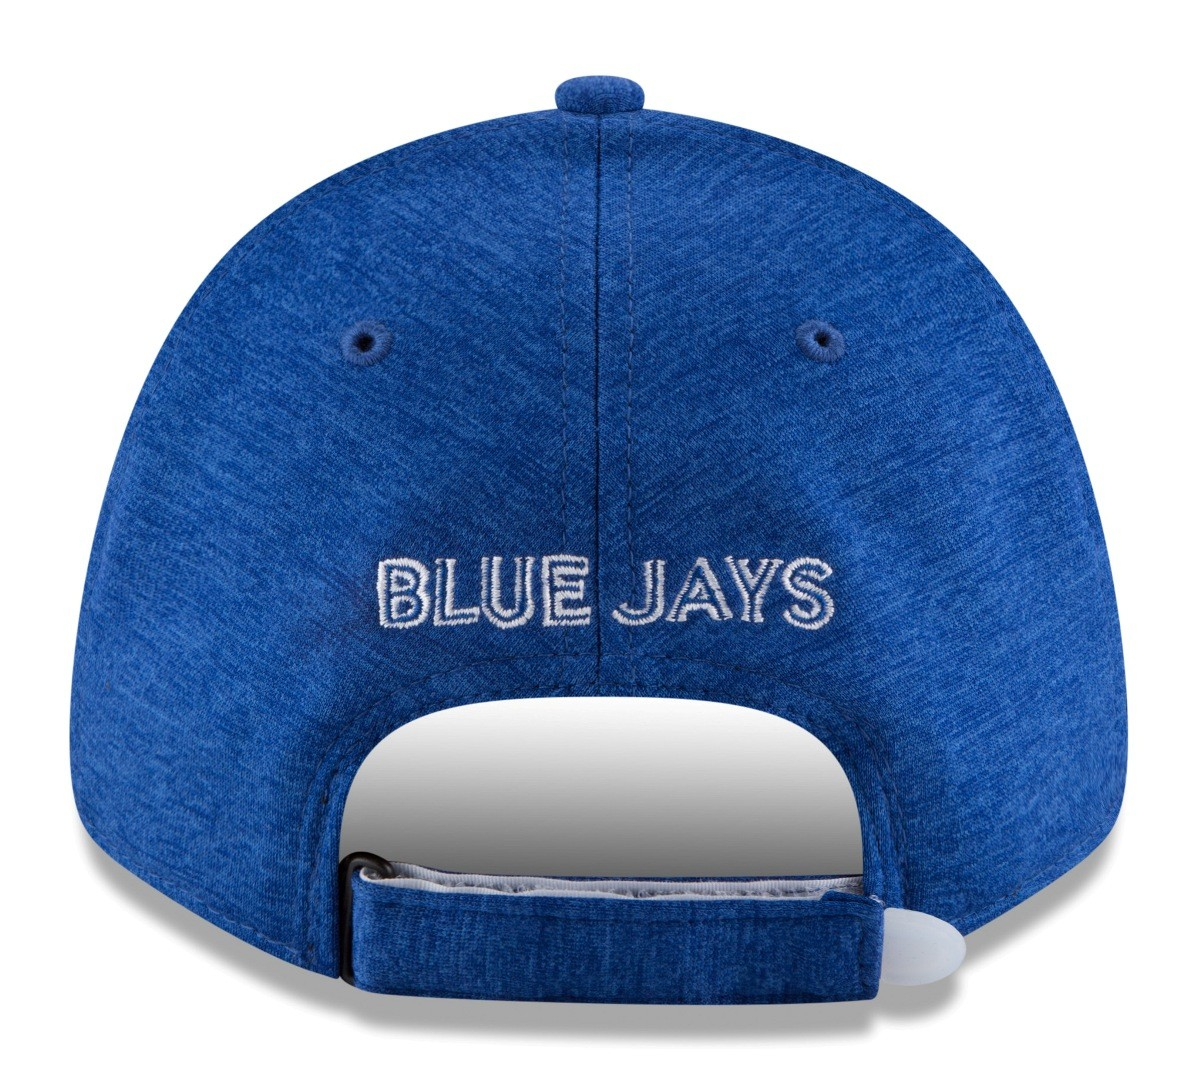 Swell Toronto Blue Jays New Era 9Forty Mlb Shadow Speed Performance Adjustable Hat Gamerscity Chair Design For Home Gamerscityorg